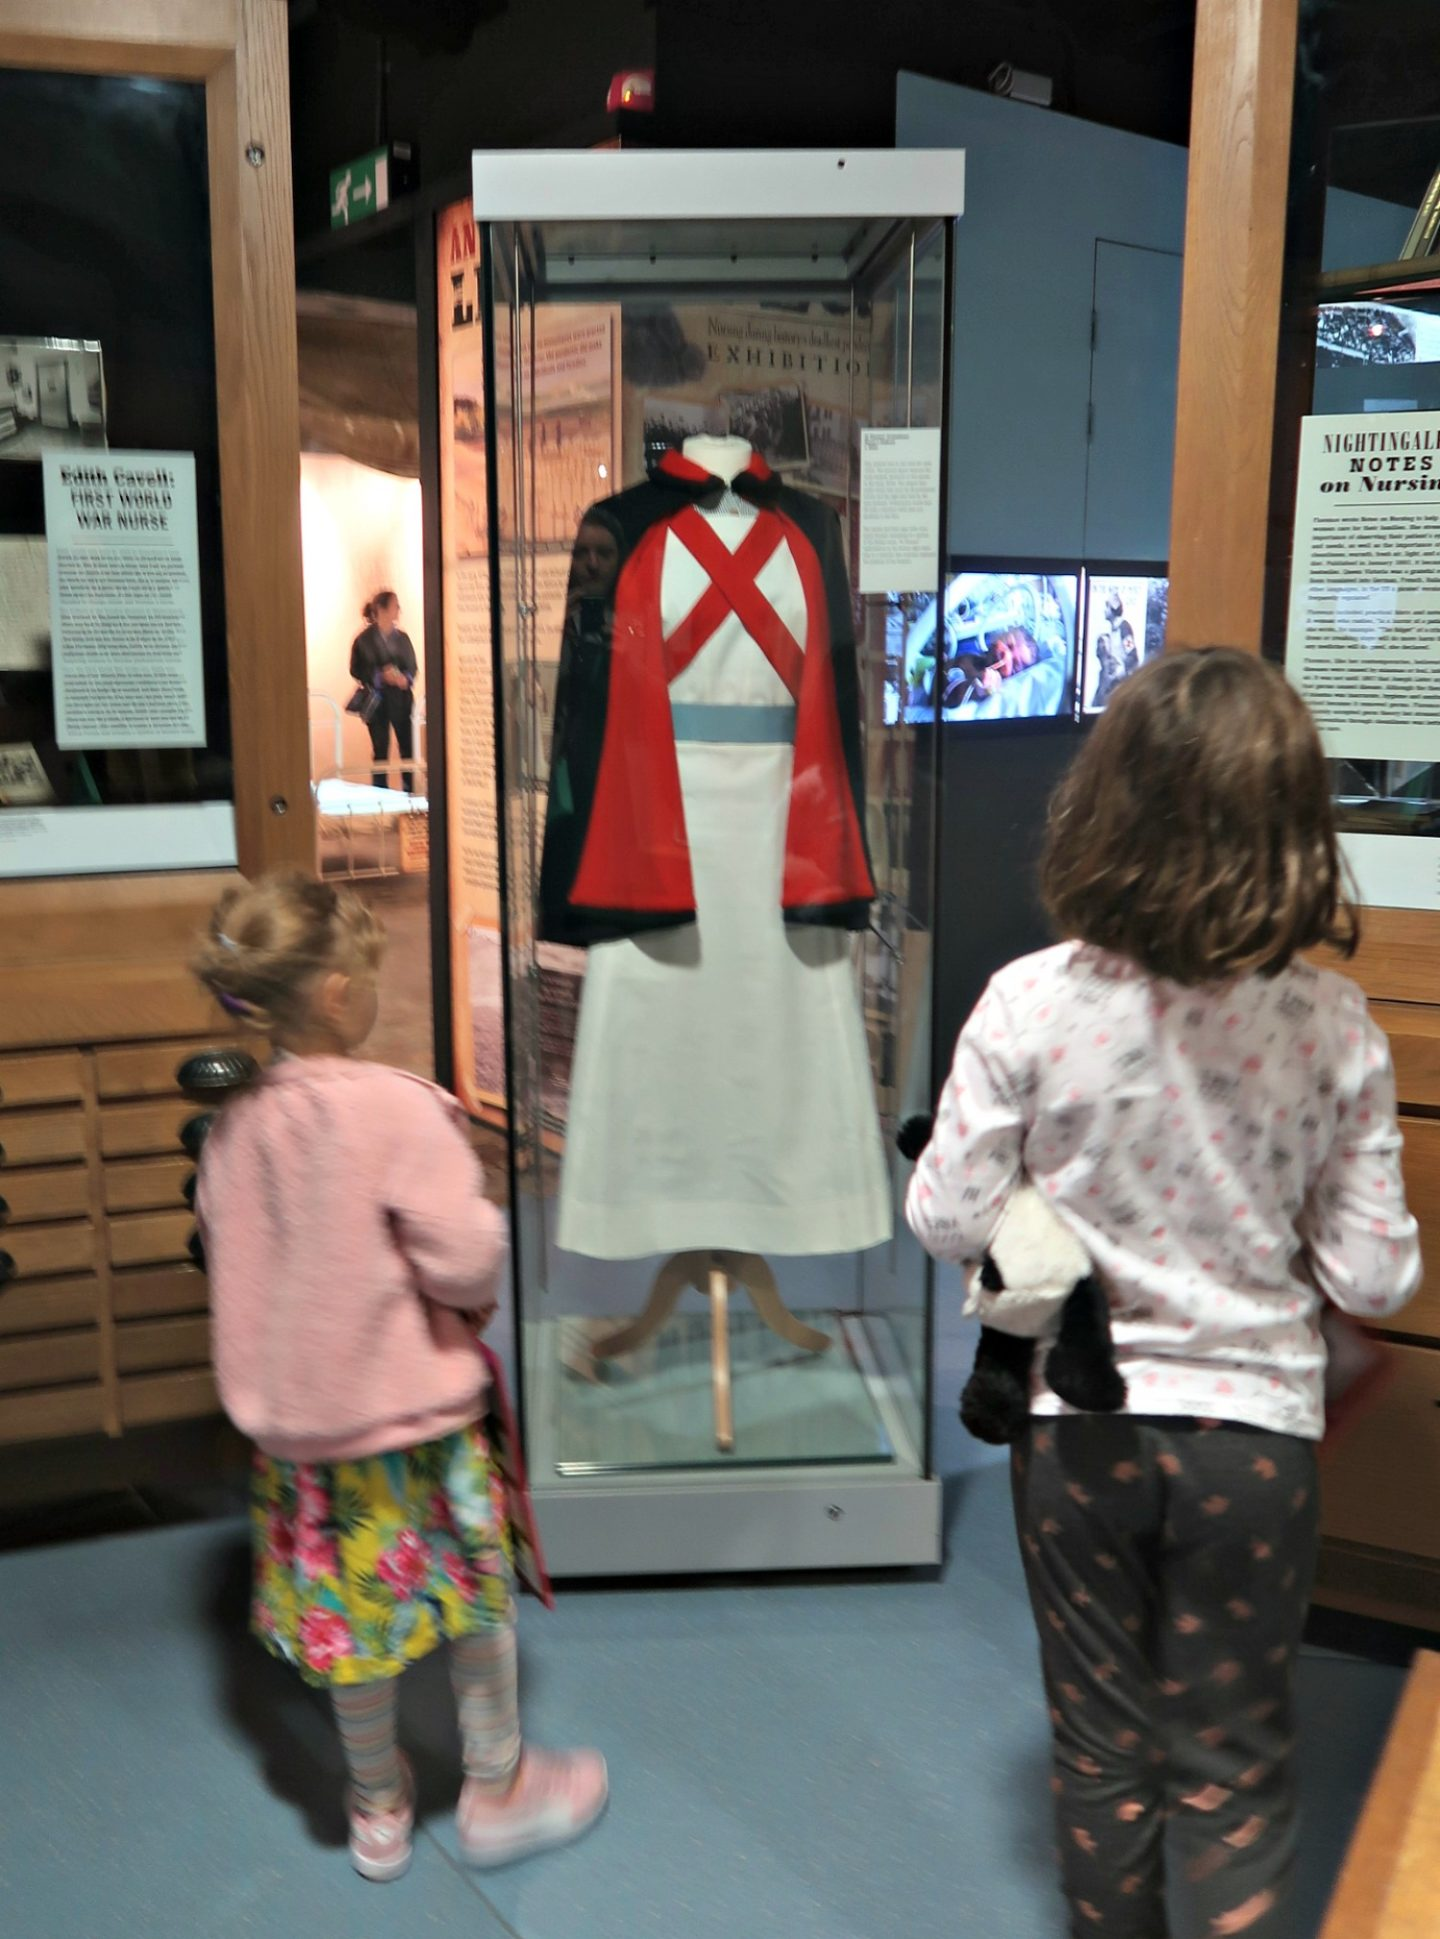 Flornence Nightingale museum nurses uniform